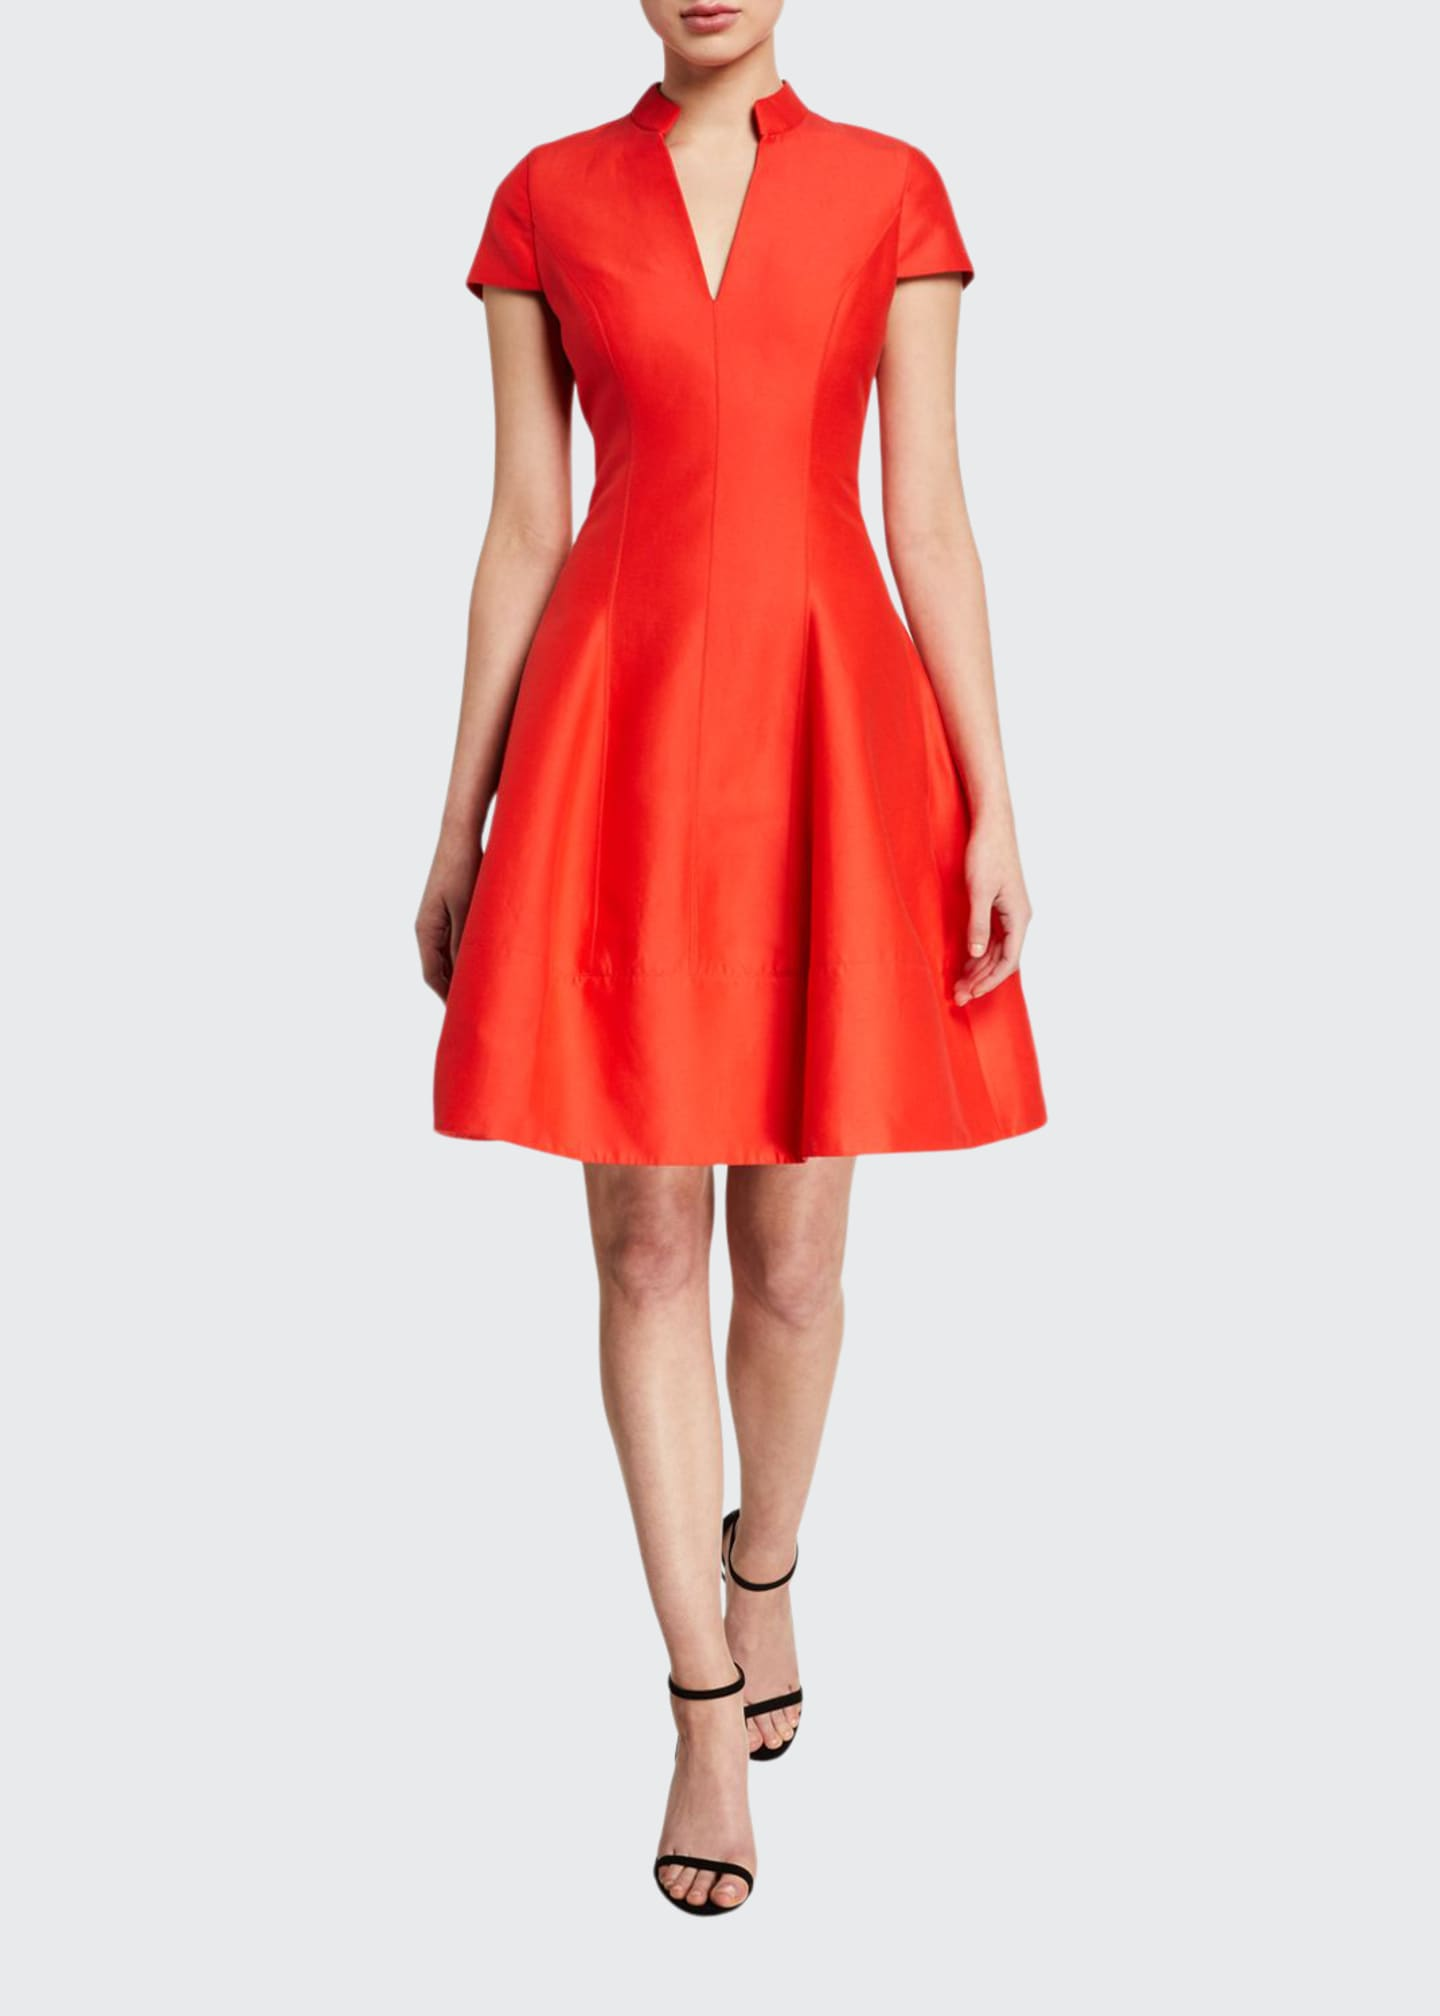 Halston V-Neck Cap-Sleeve Silk Faille Dress w/ Mandarin